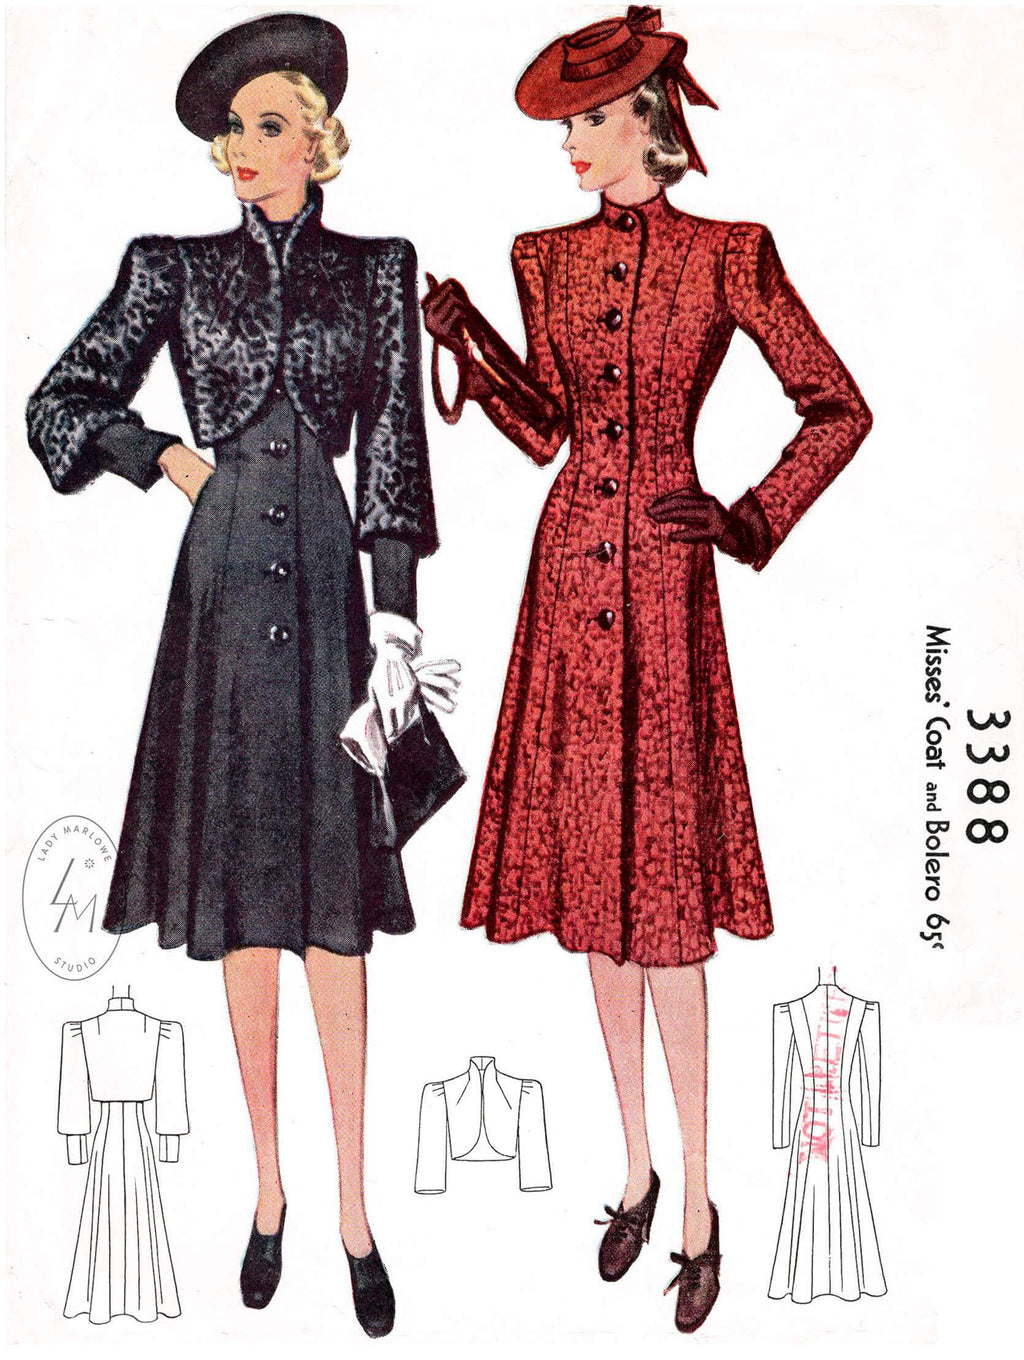 1930s 1939 outwear coat & bolero jacket McCall 3388 princess seams 3/4 sleeves flounce hem vintage sewing pattern reproduction